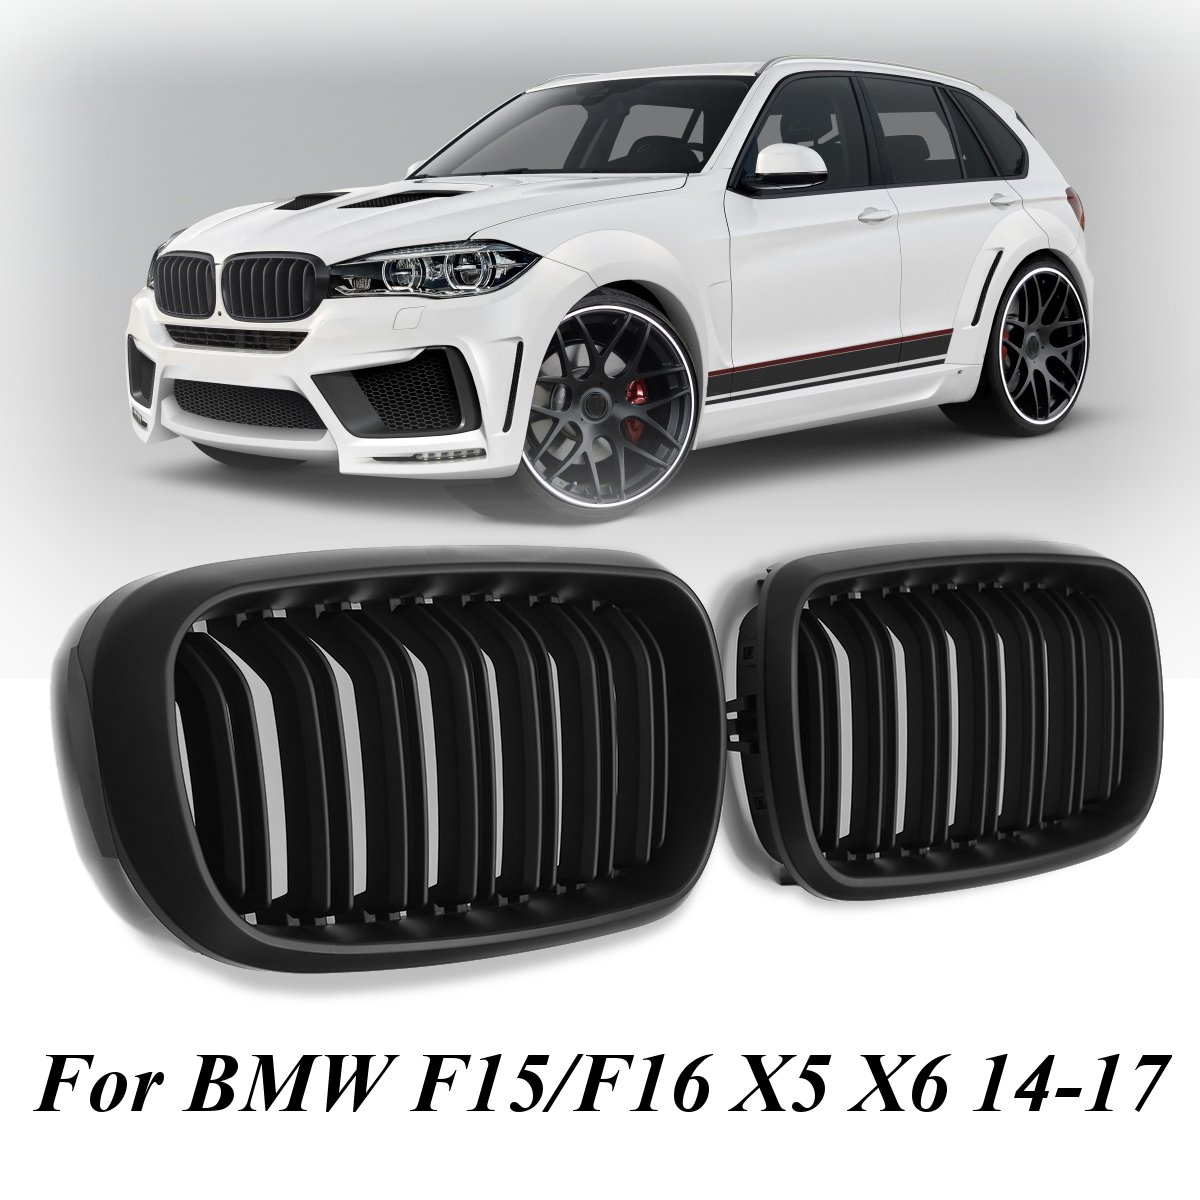 Pair New Matte Black Double Slat Line Front Kidney Grill Grille For BMW F15/F16 X5 X6 2014 2015 2016 2017 pair gloss matt black m color front kidney racing bumper grille grill for bmw x5 f15 x6 f16 x5m f85 x6m f86 2014 2015 2016 2017